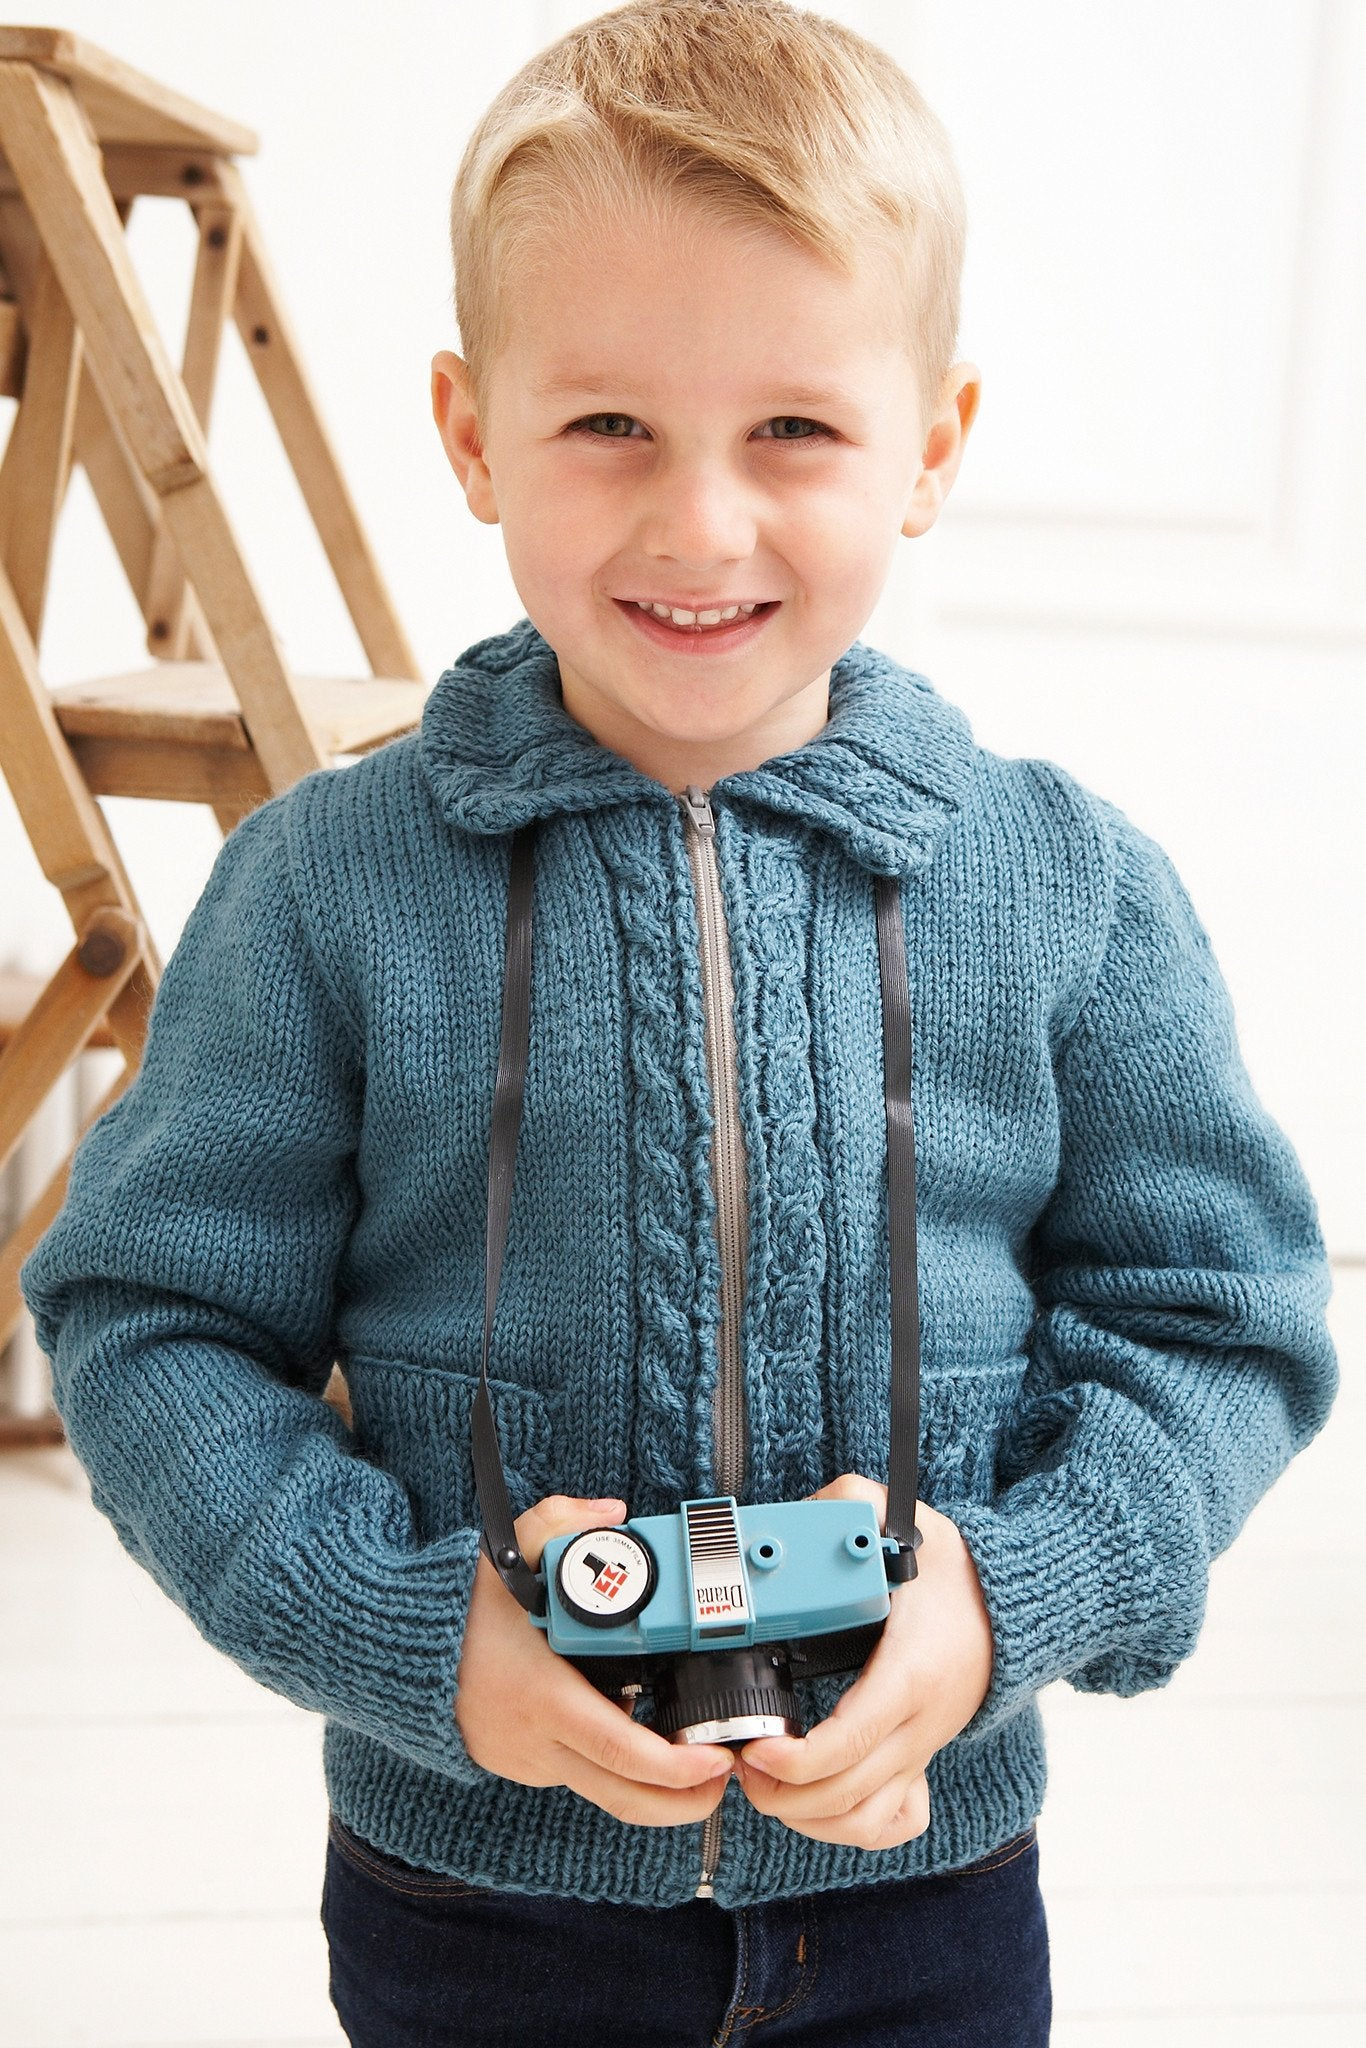 Cable Cardigan Boys Vintage Knitting Pattern – The Knitting Network